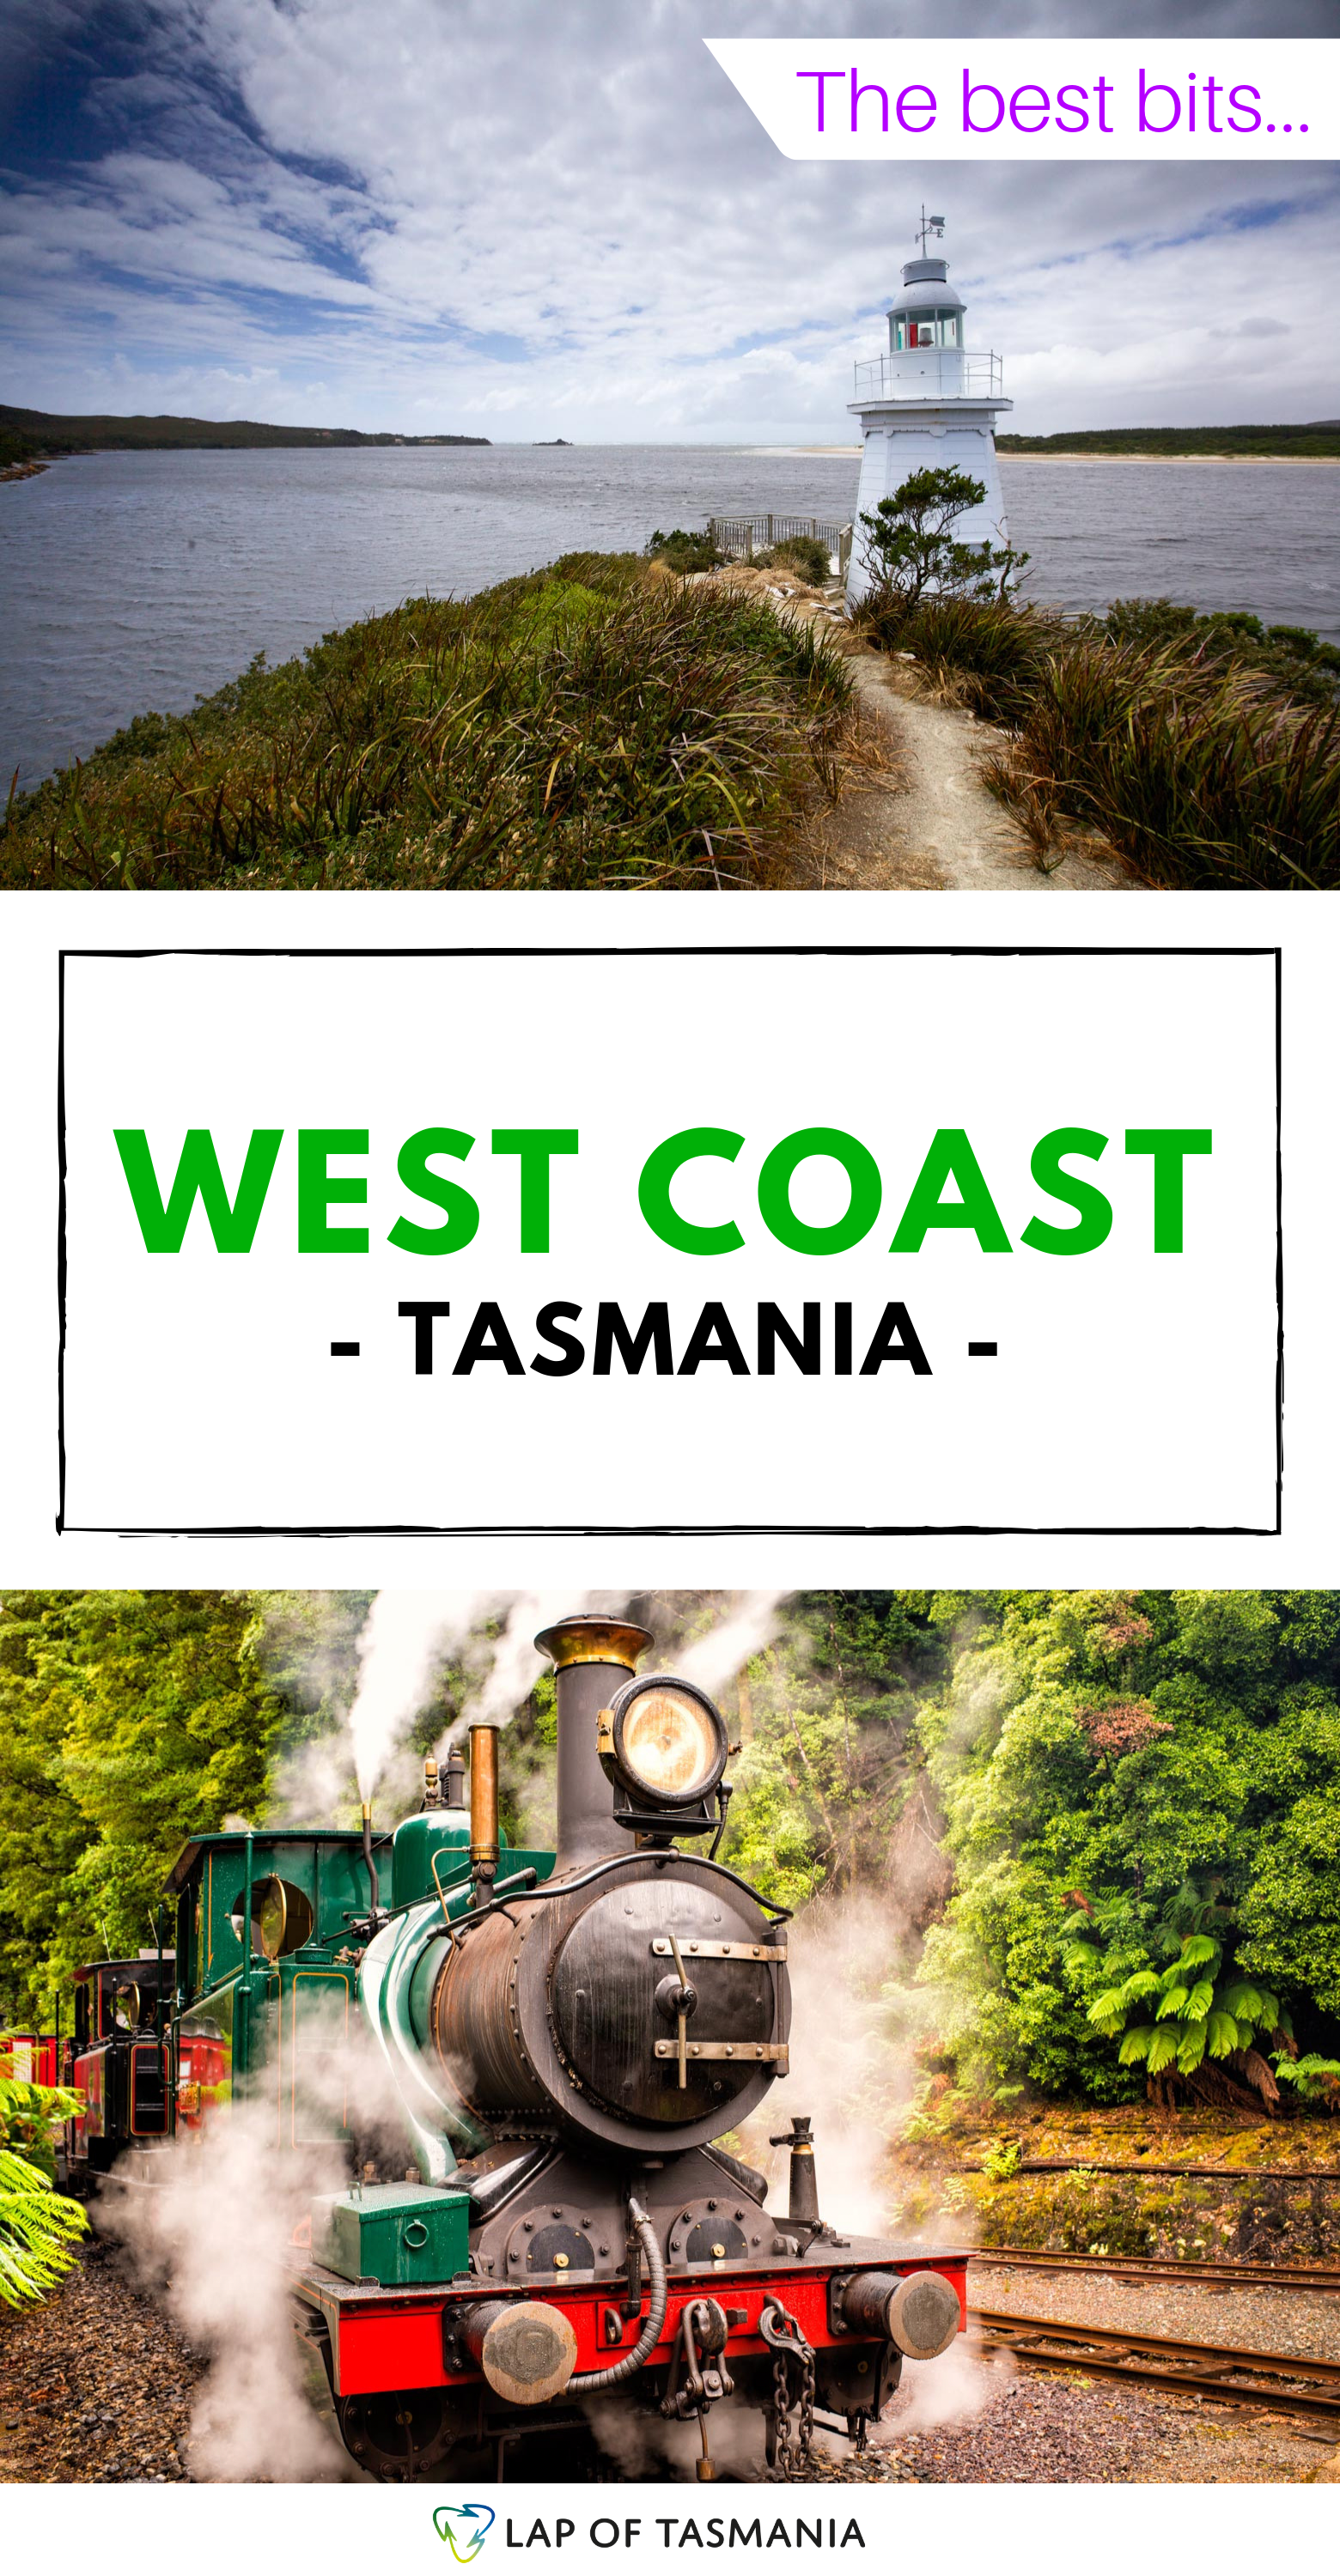 West Coast Wilds (Tasmania) - Things to See and Do #westcoastroadtrip